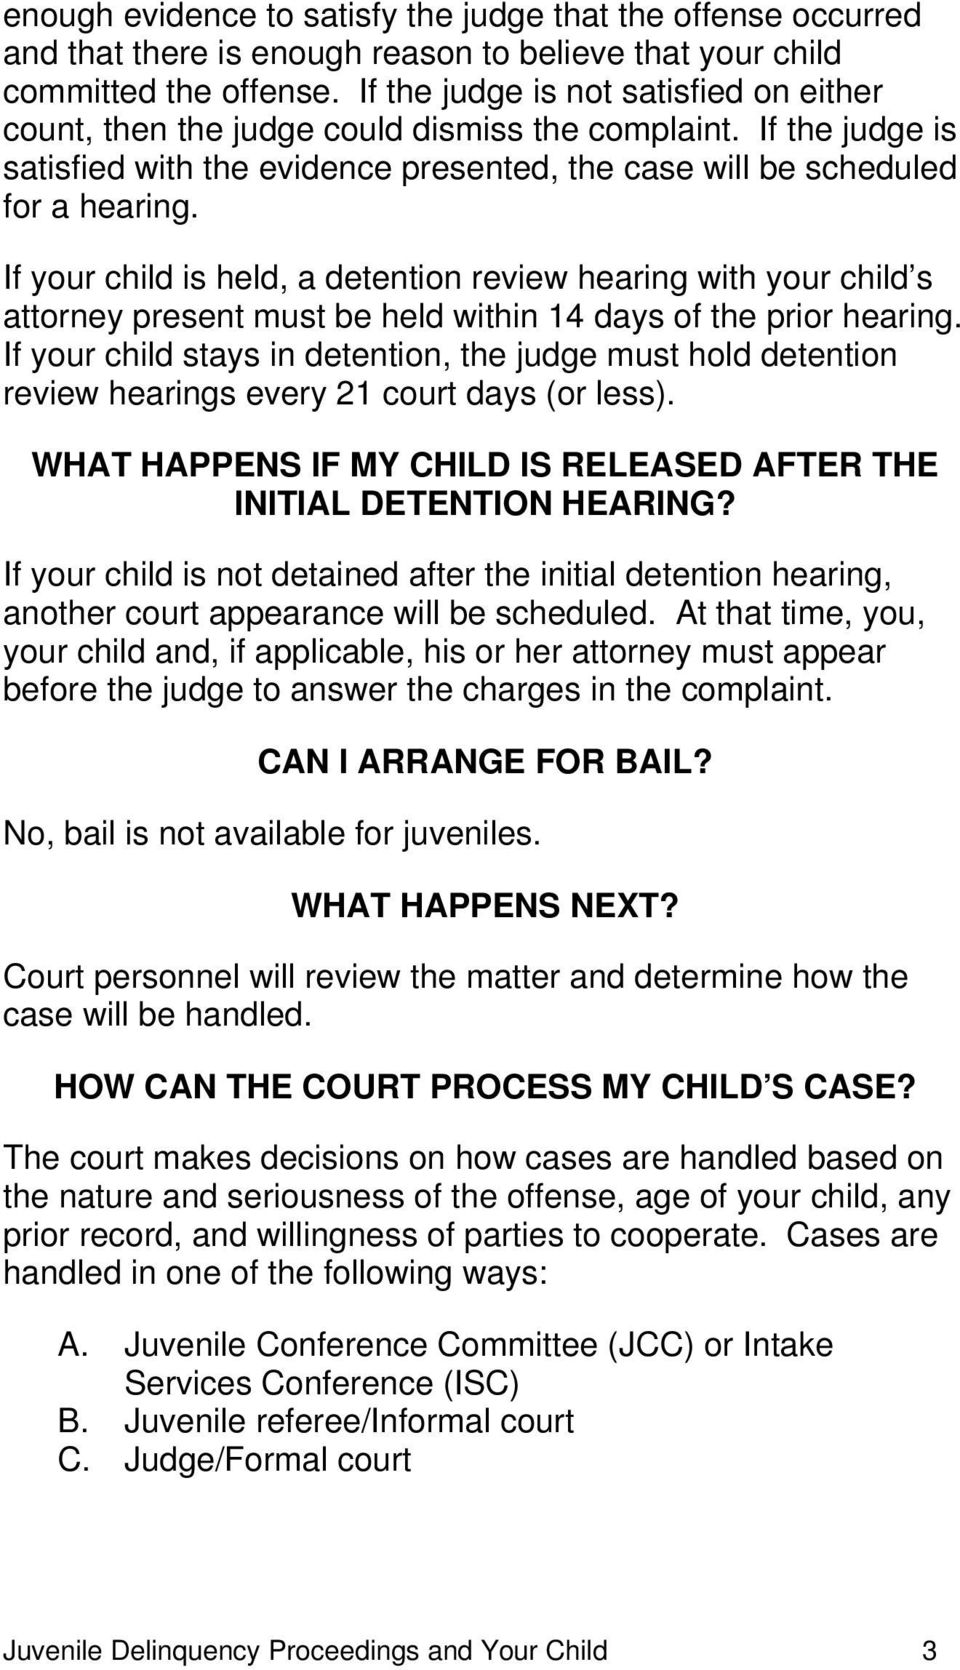 If your child is held, a detention review hearing with your child s attorney present must be held within 14 days of the prior hearing.